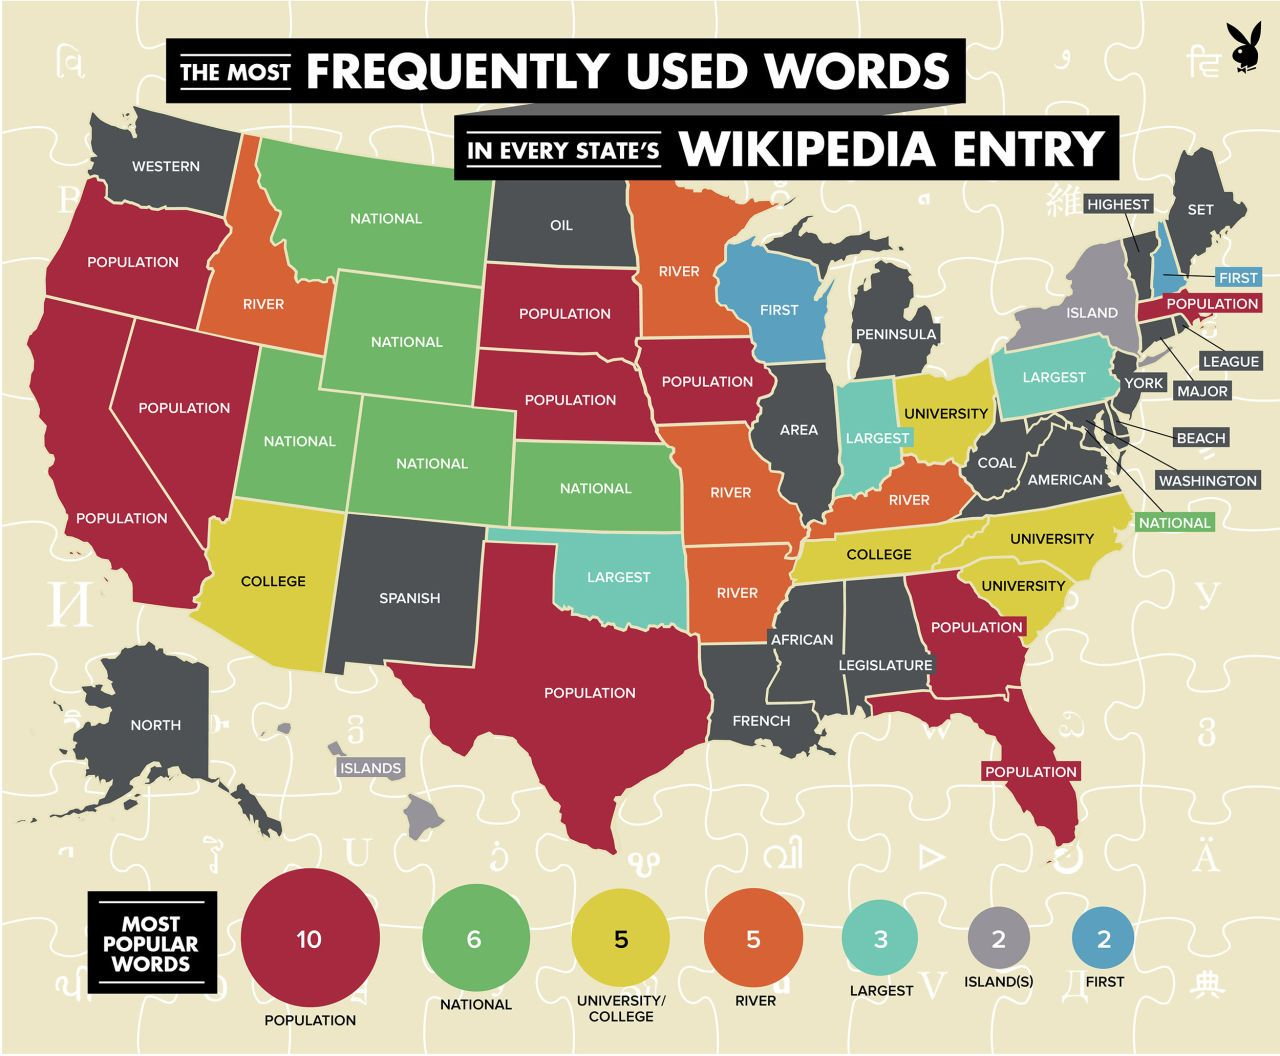 The most frequently used words in every US state's